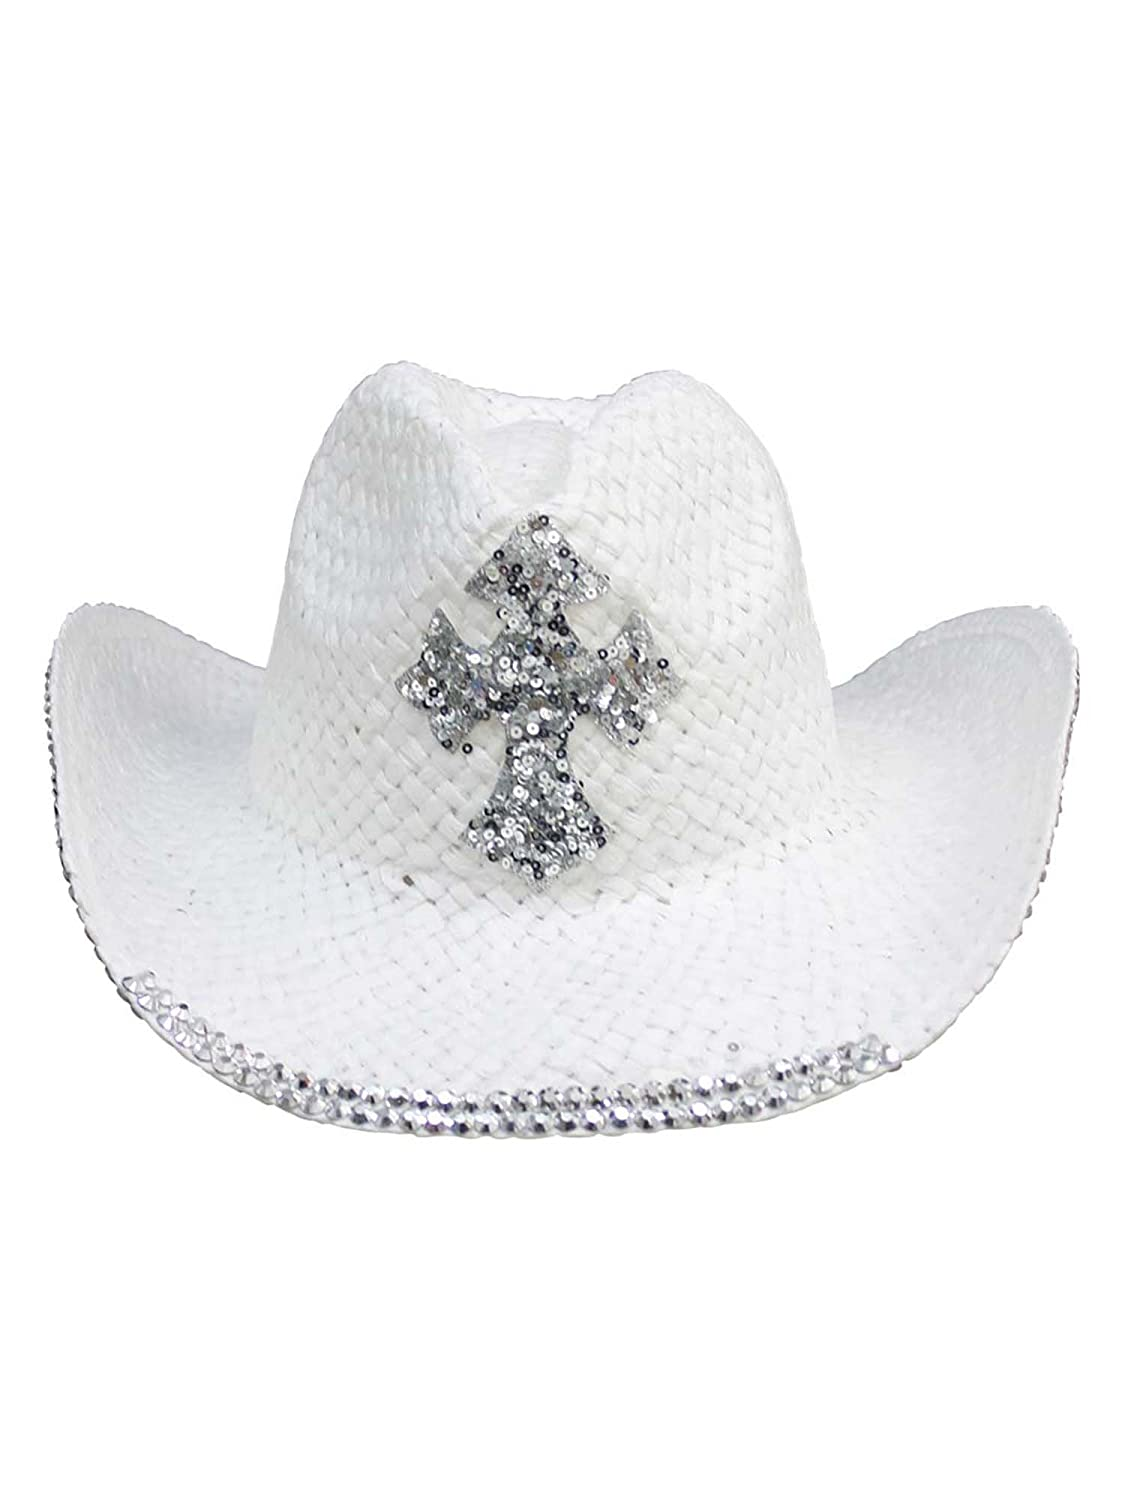 Straw Cowboy Hat Sequin Cross Luxury Divas H03976